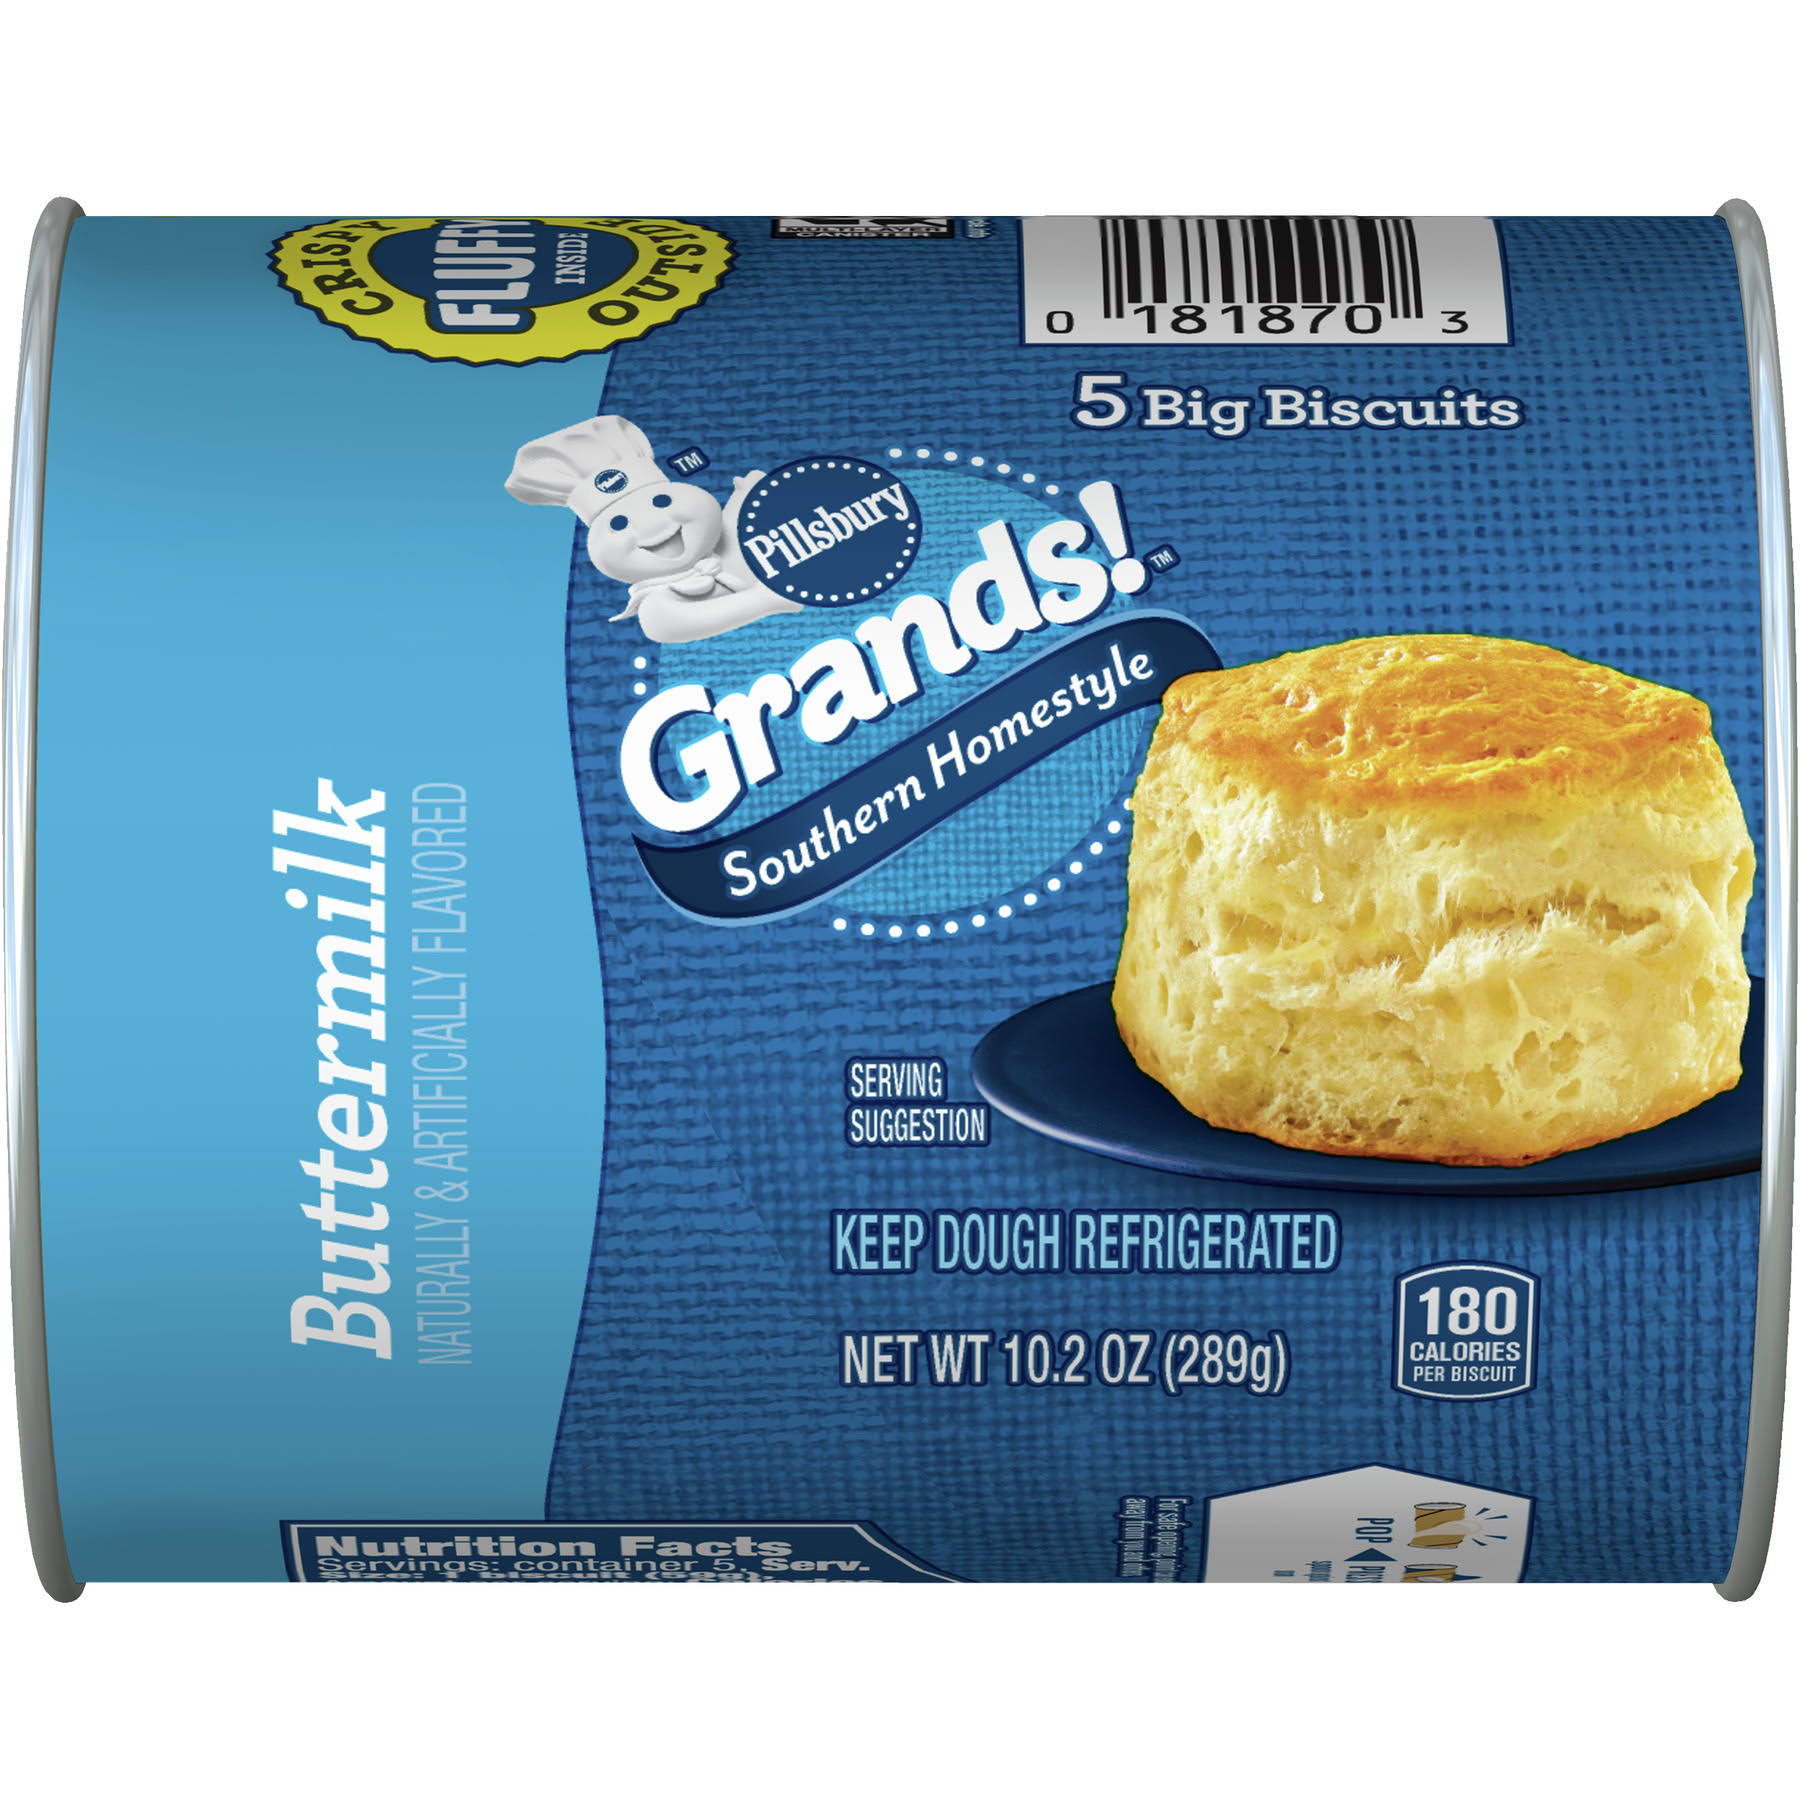 Pillsbury Grands Southern Homestyle Big Biscuits Dough - Buttermilk, 289g, 5 Big Biscuiits